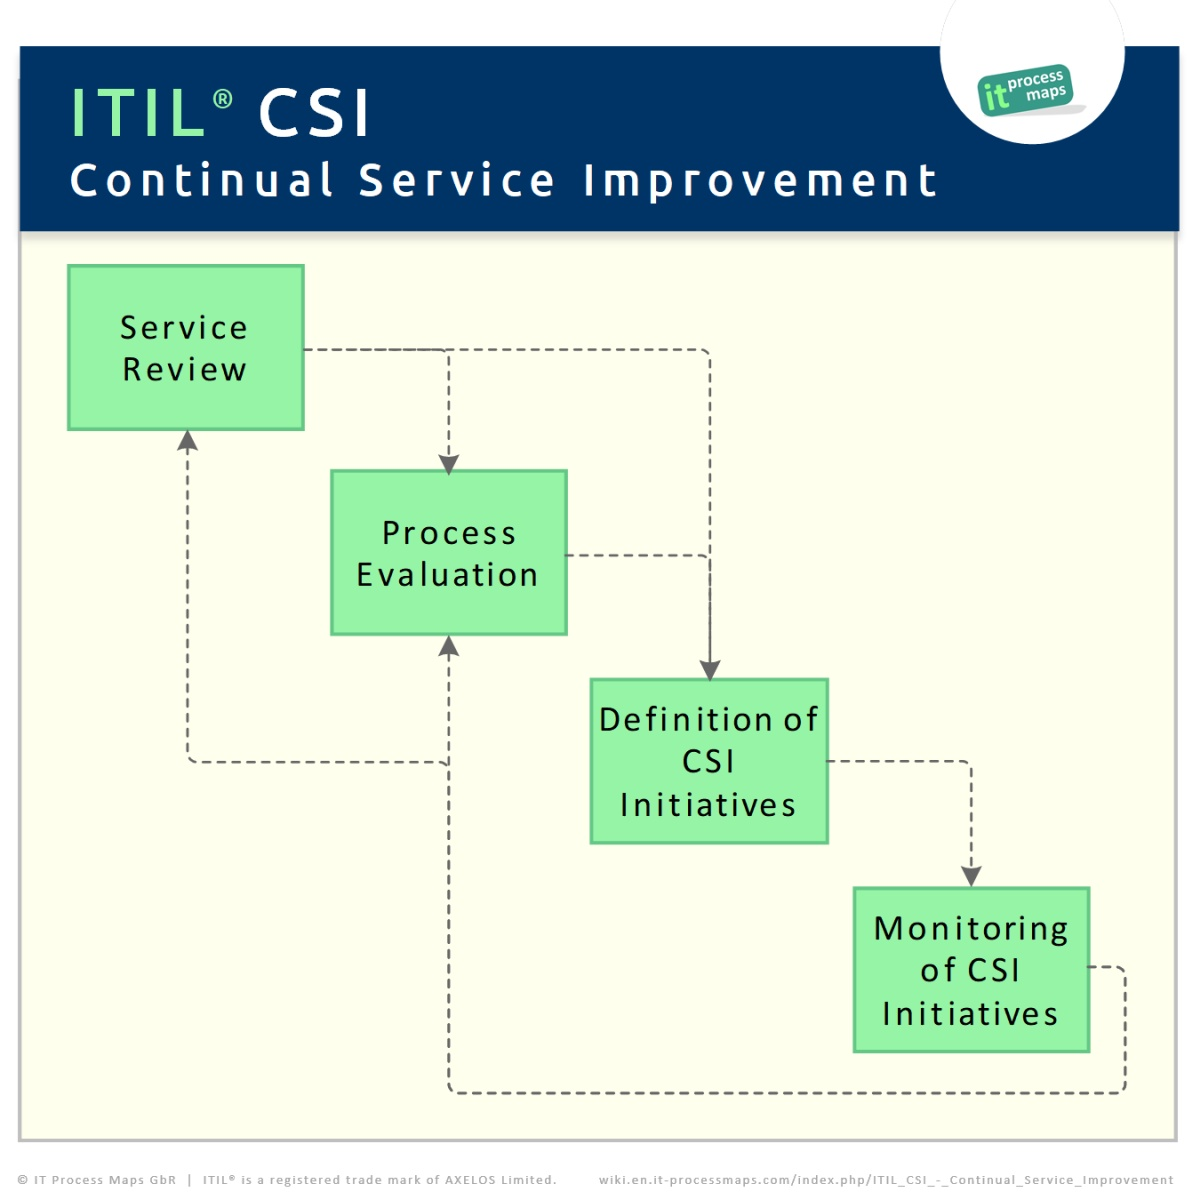 Itil csi continual service improvement it process wiki for Continuous service improvement plan template